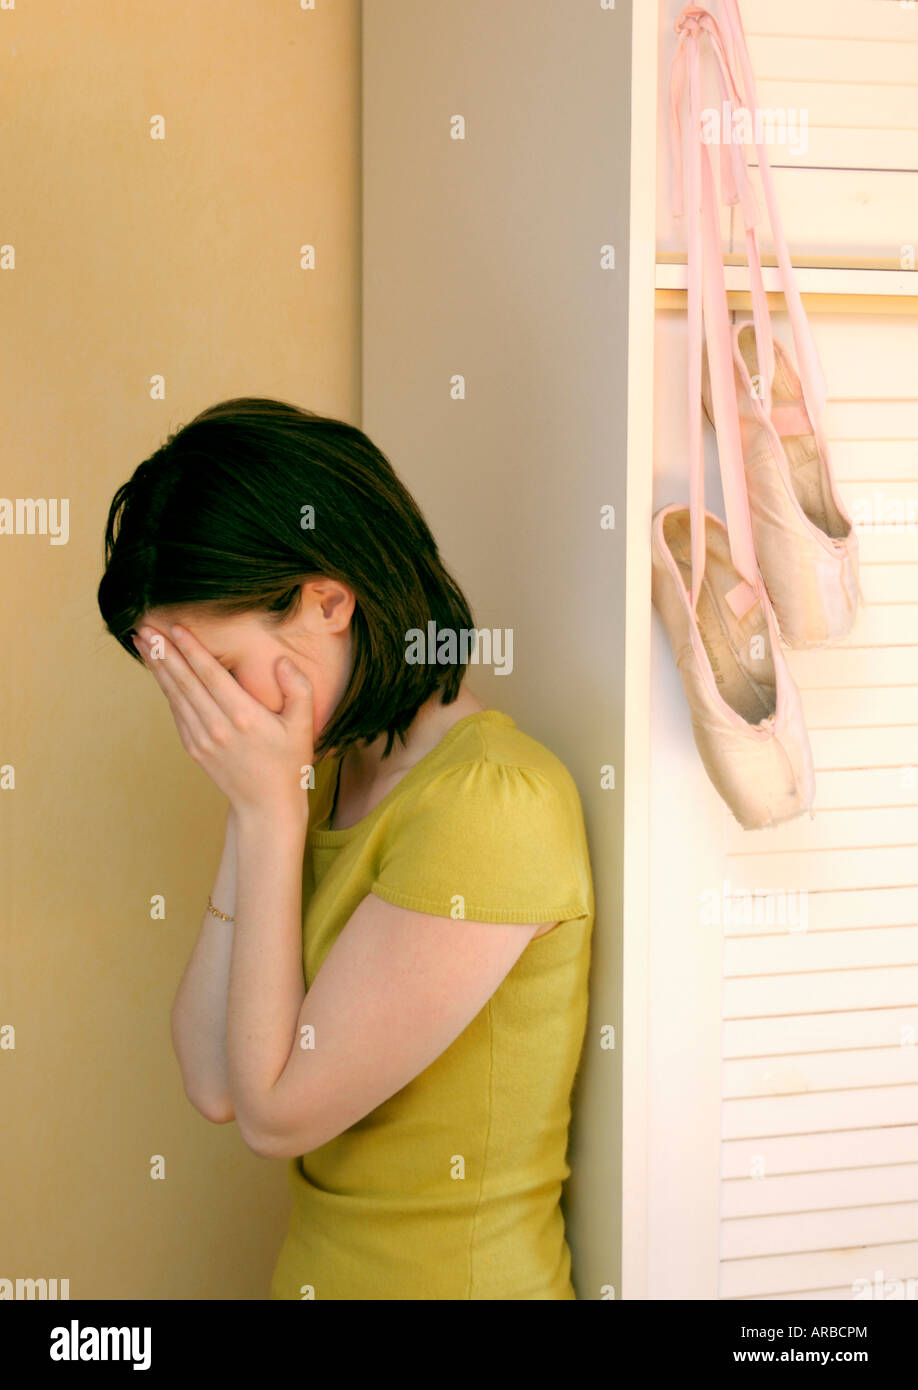 Sad unhappy teen girl in her bedroom with her hands over her face - Stock Image